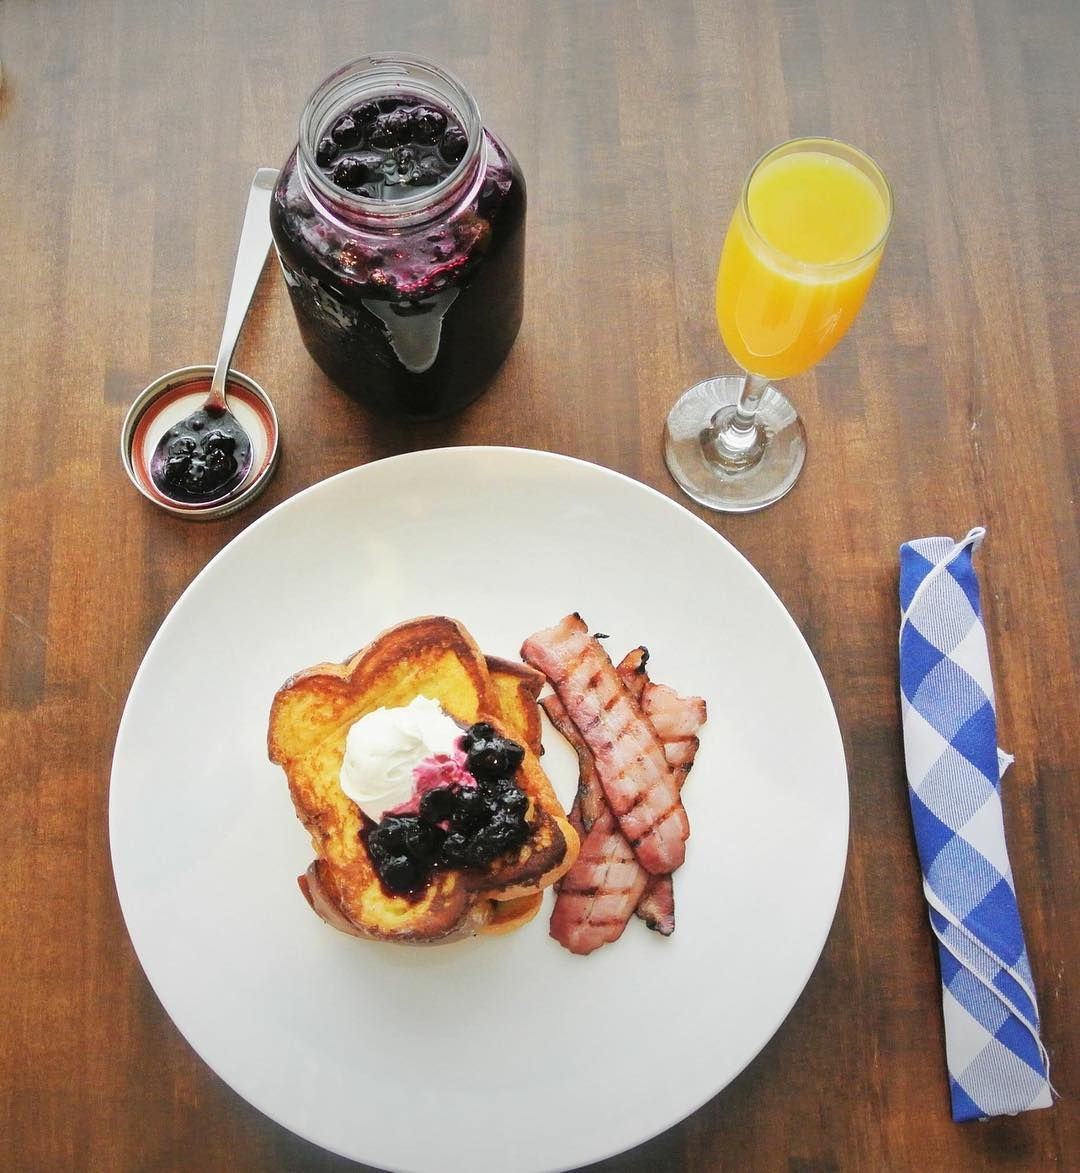 7 musttry brunch spots outside of downtown Calgary